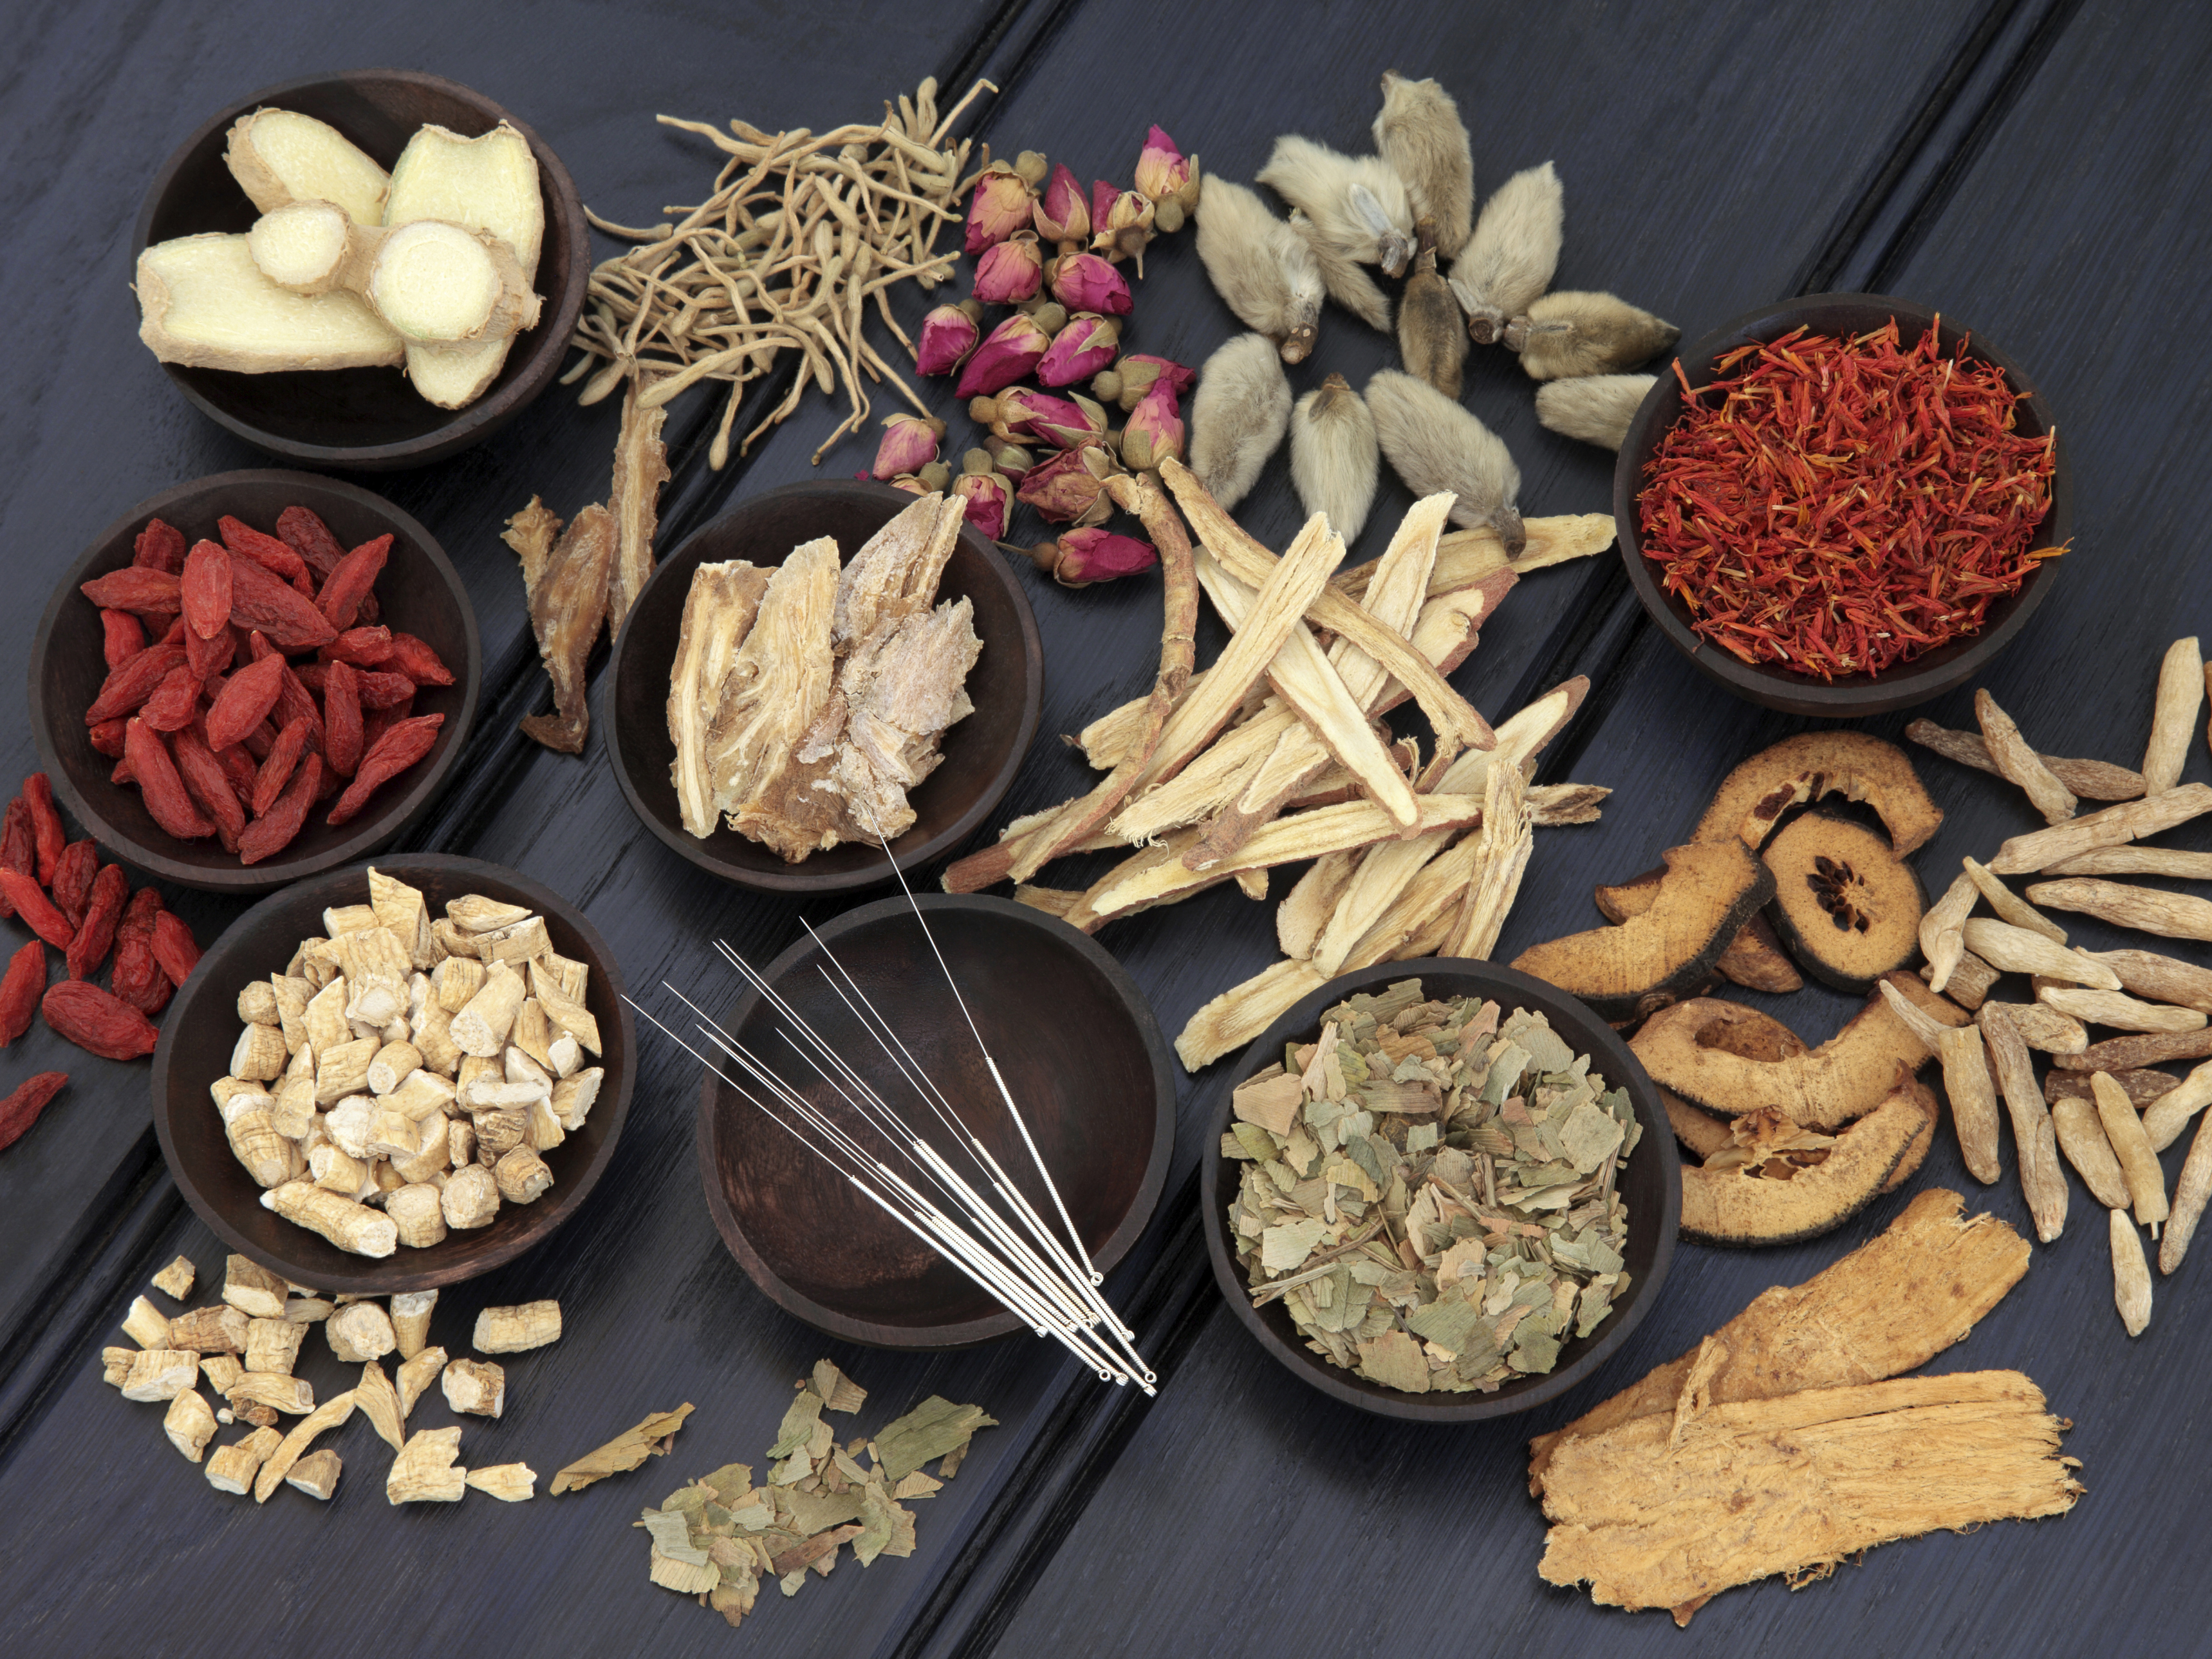 Chinese medicine for cancer